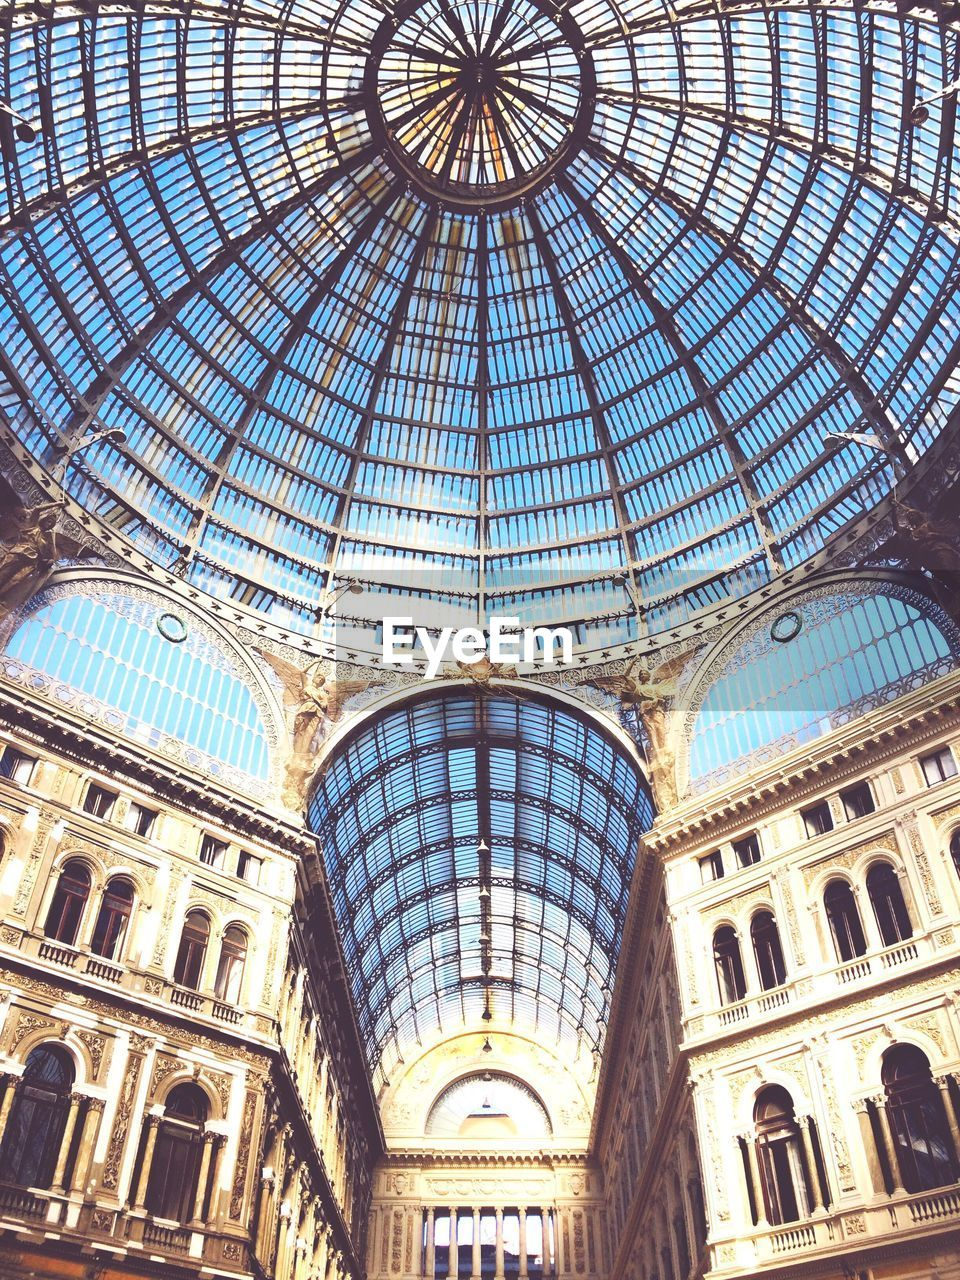 built structure, architecture, ceiling, low angle view, building exterior, arch, travel destinations, no people, sunlight, dome, the past, history, travel, shopping mall, tourism, building, pattern, city, outdoors, architectural column, skylight, ornate, architecture and art